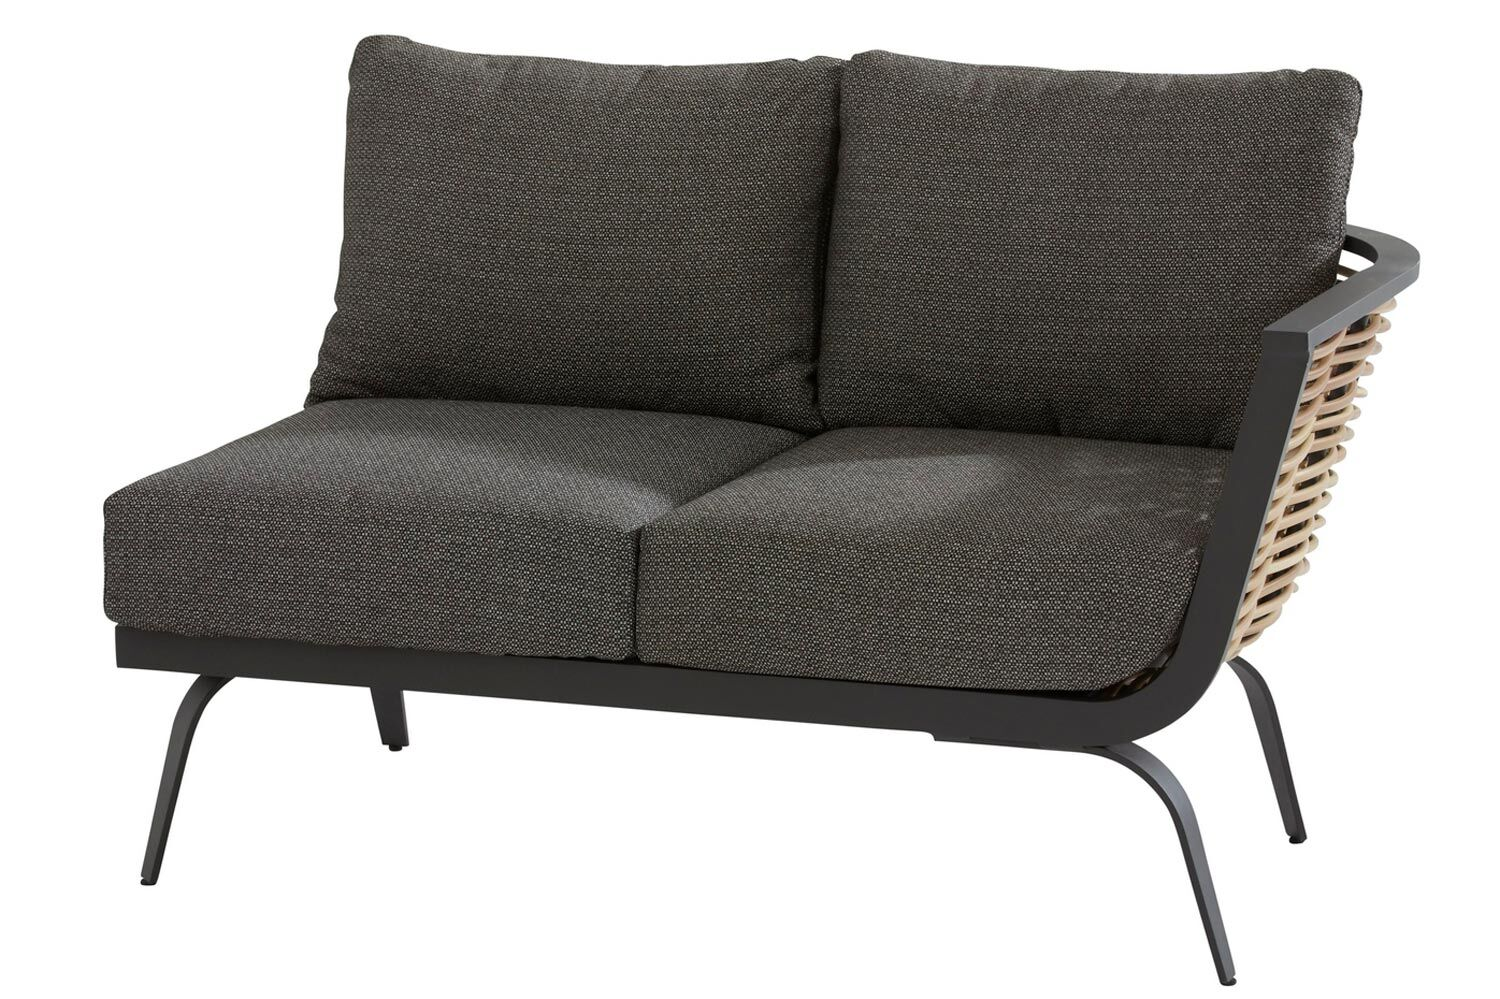 4 Seasons Outdoor Antibes 2 seater bench left arm with cushion and 3 pillows